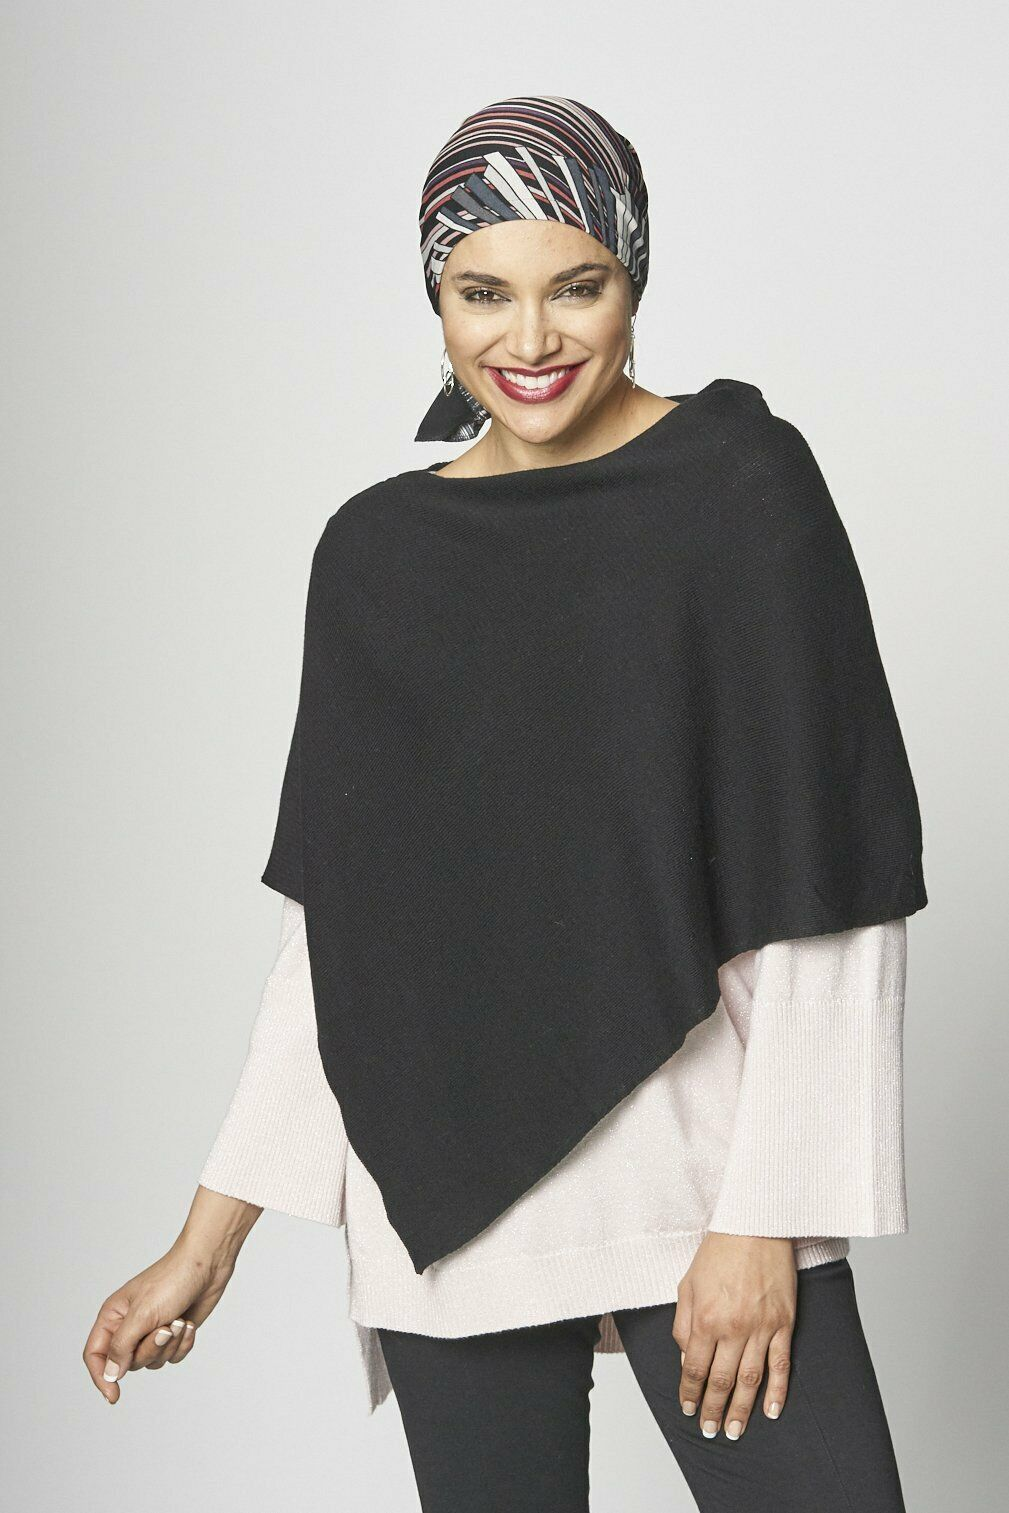 Women Parkhurs Solid Capri Poncho Cotton/Blend one size fits all made in Canada